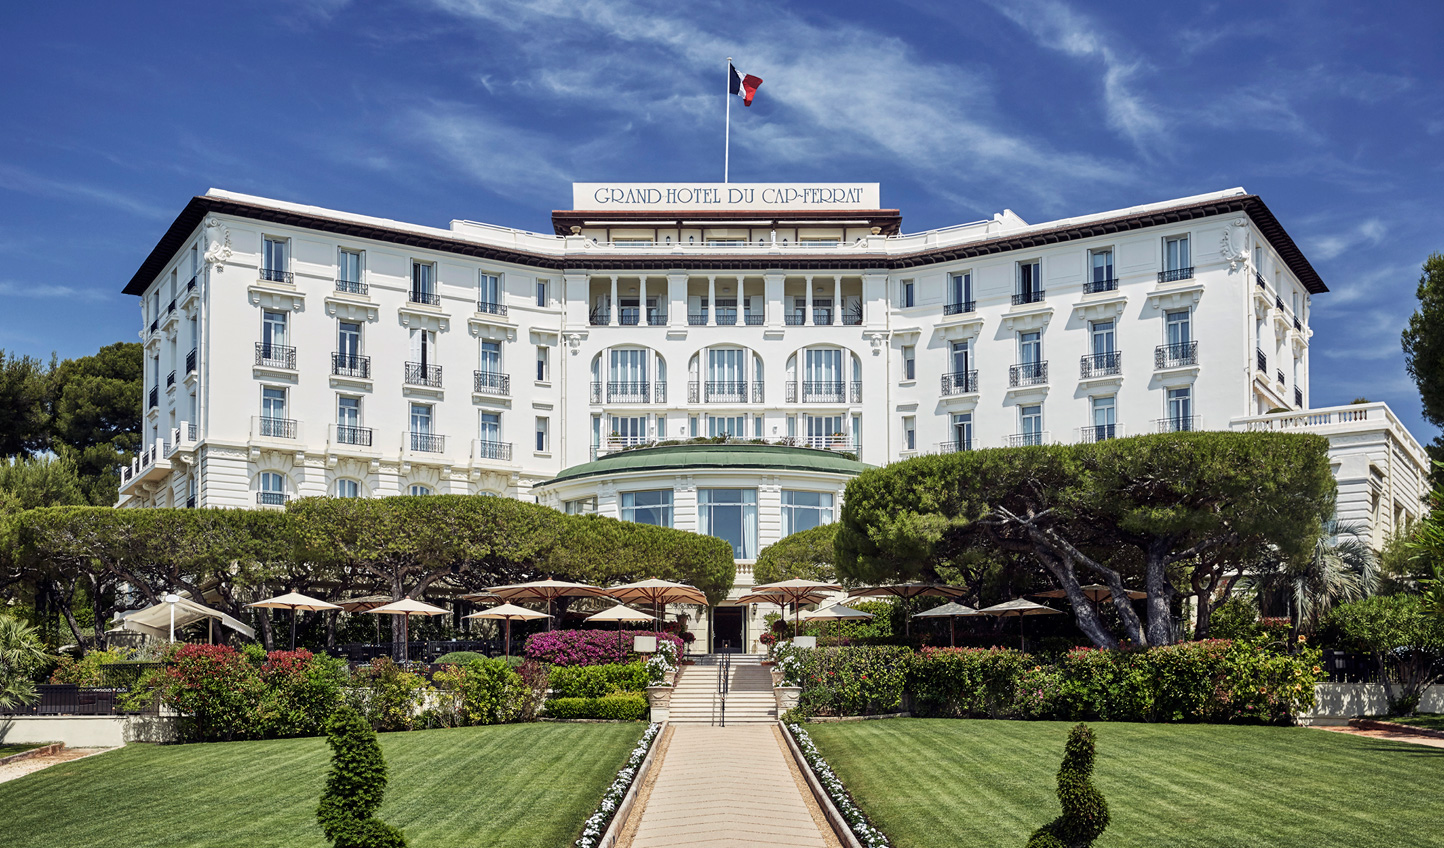 End your trip on a high at the legendary Grand Hôtel du Cap-Ferrat